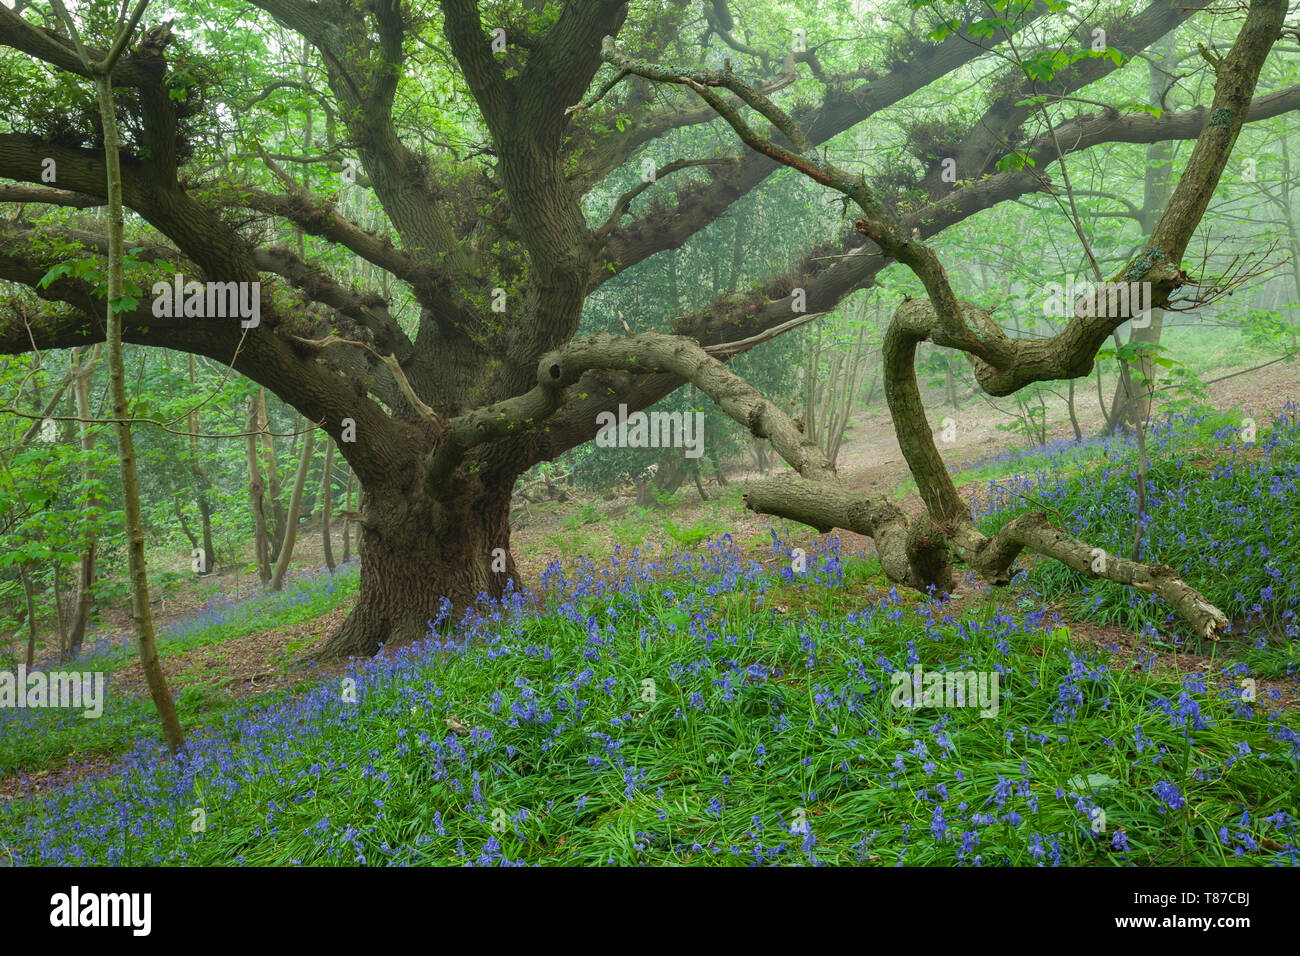 Bluebells in a misty West Sussex woodland. Stock Photo